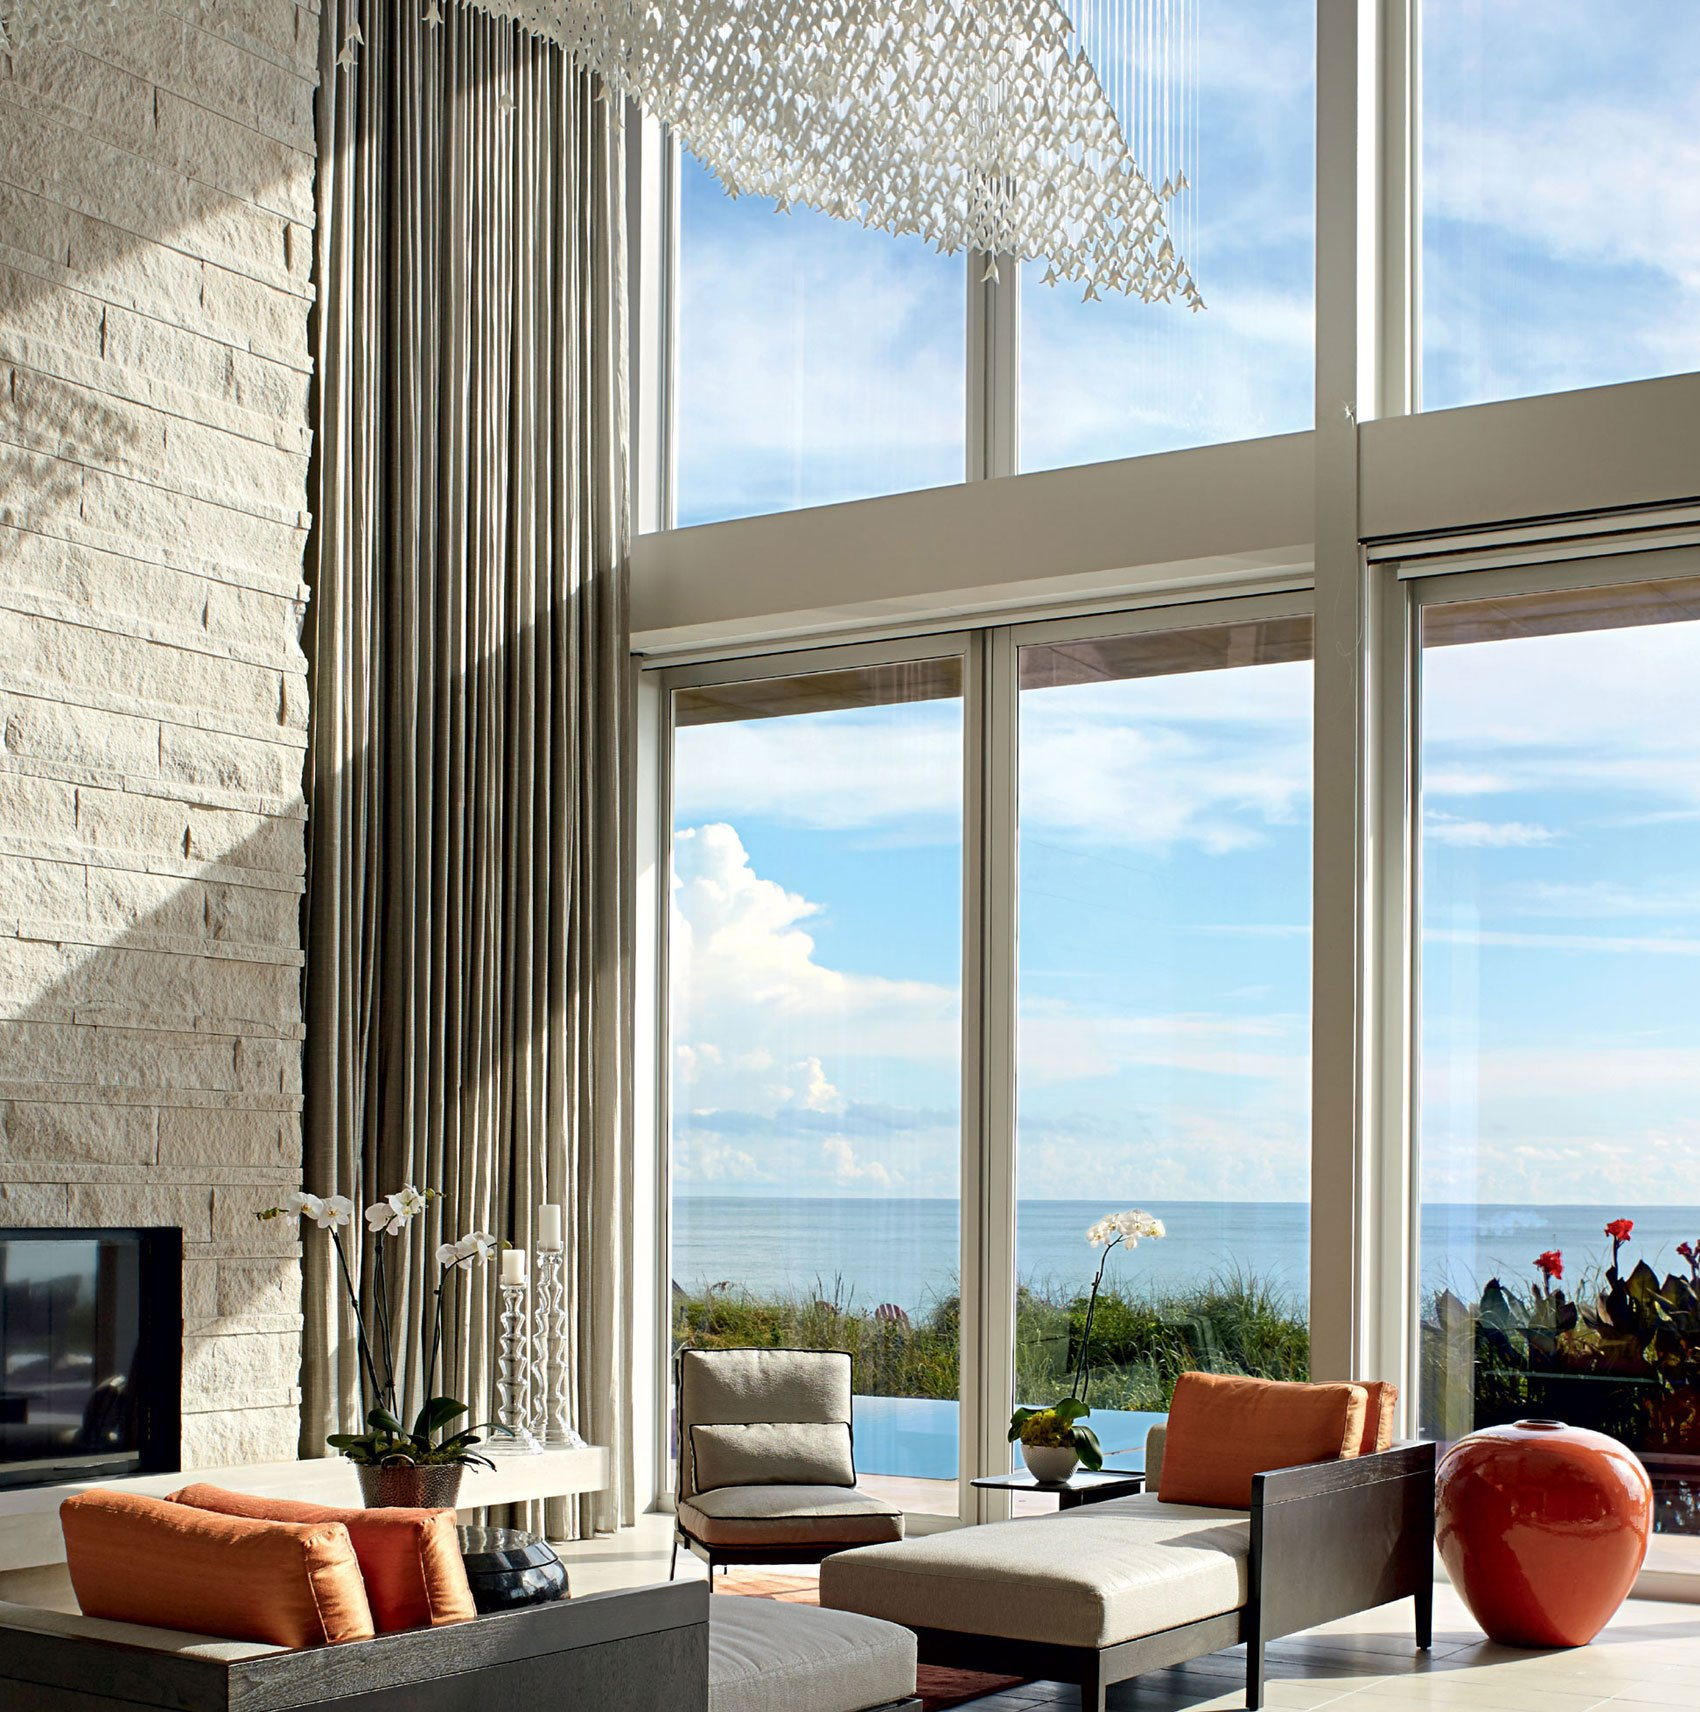 This flexibility of this home, and the extraordinary ocean panorama, makes this a very special spot.